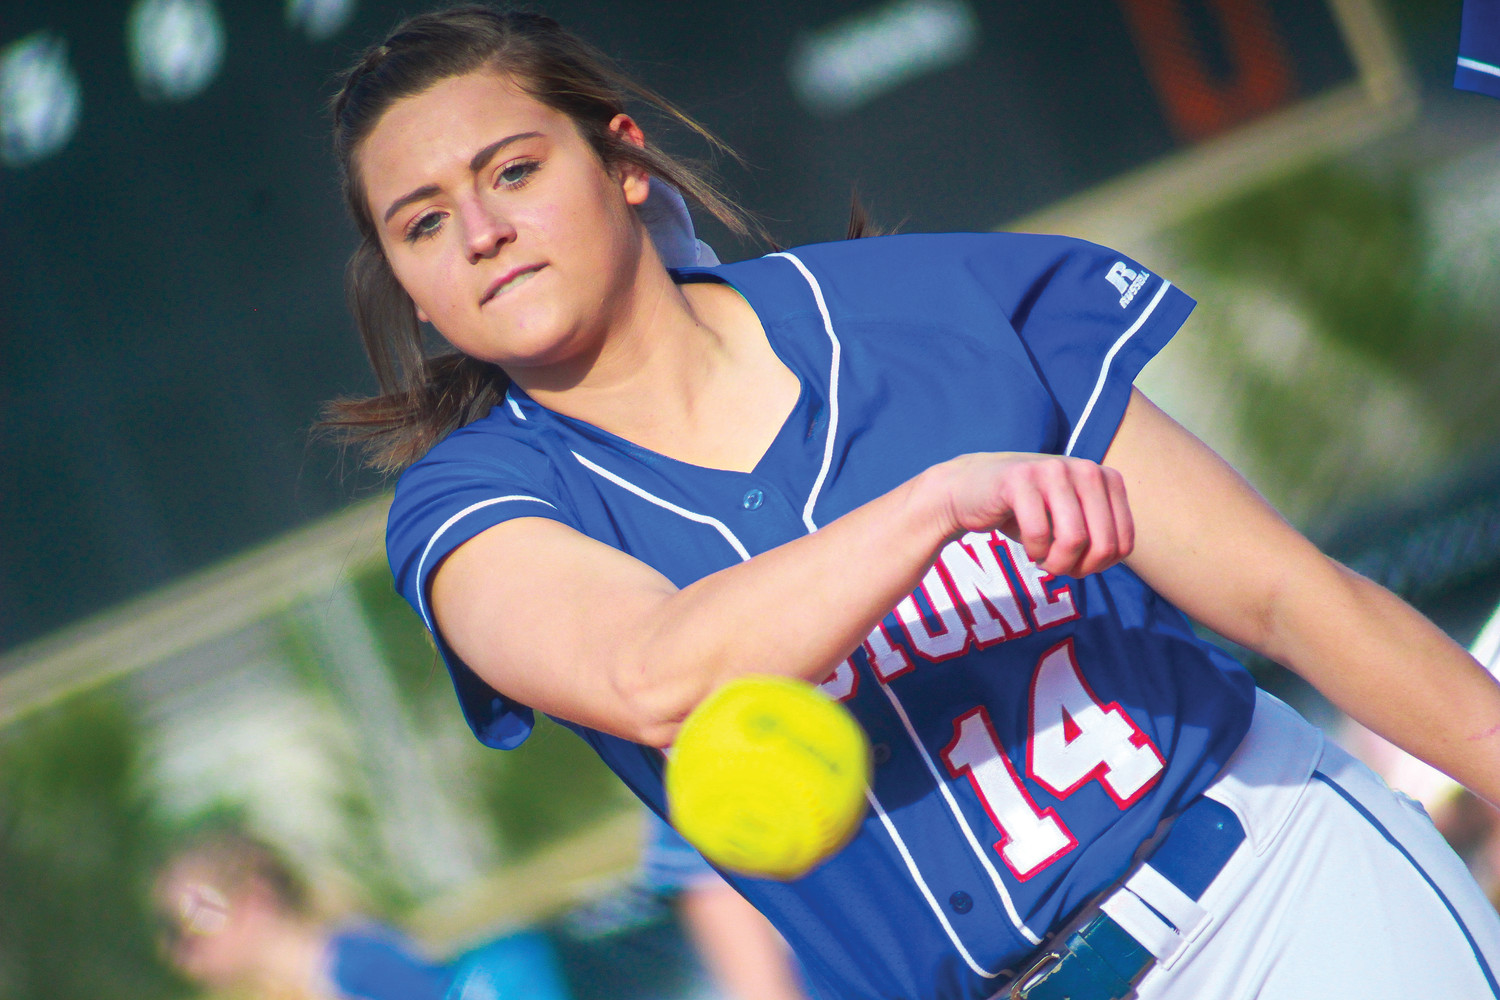 Keystone Heights junior pitcher Megan Moncrief will return next year with a strong lineup after a Final Four appearance from the Lady Indians in Class 5A.